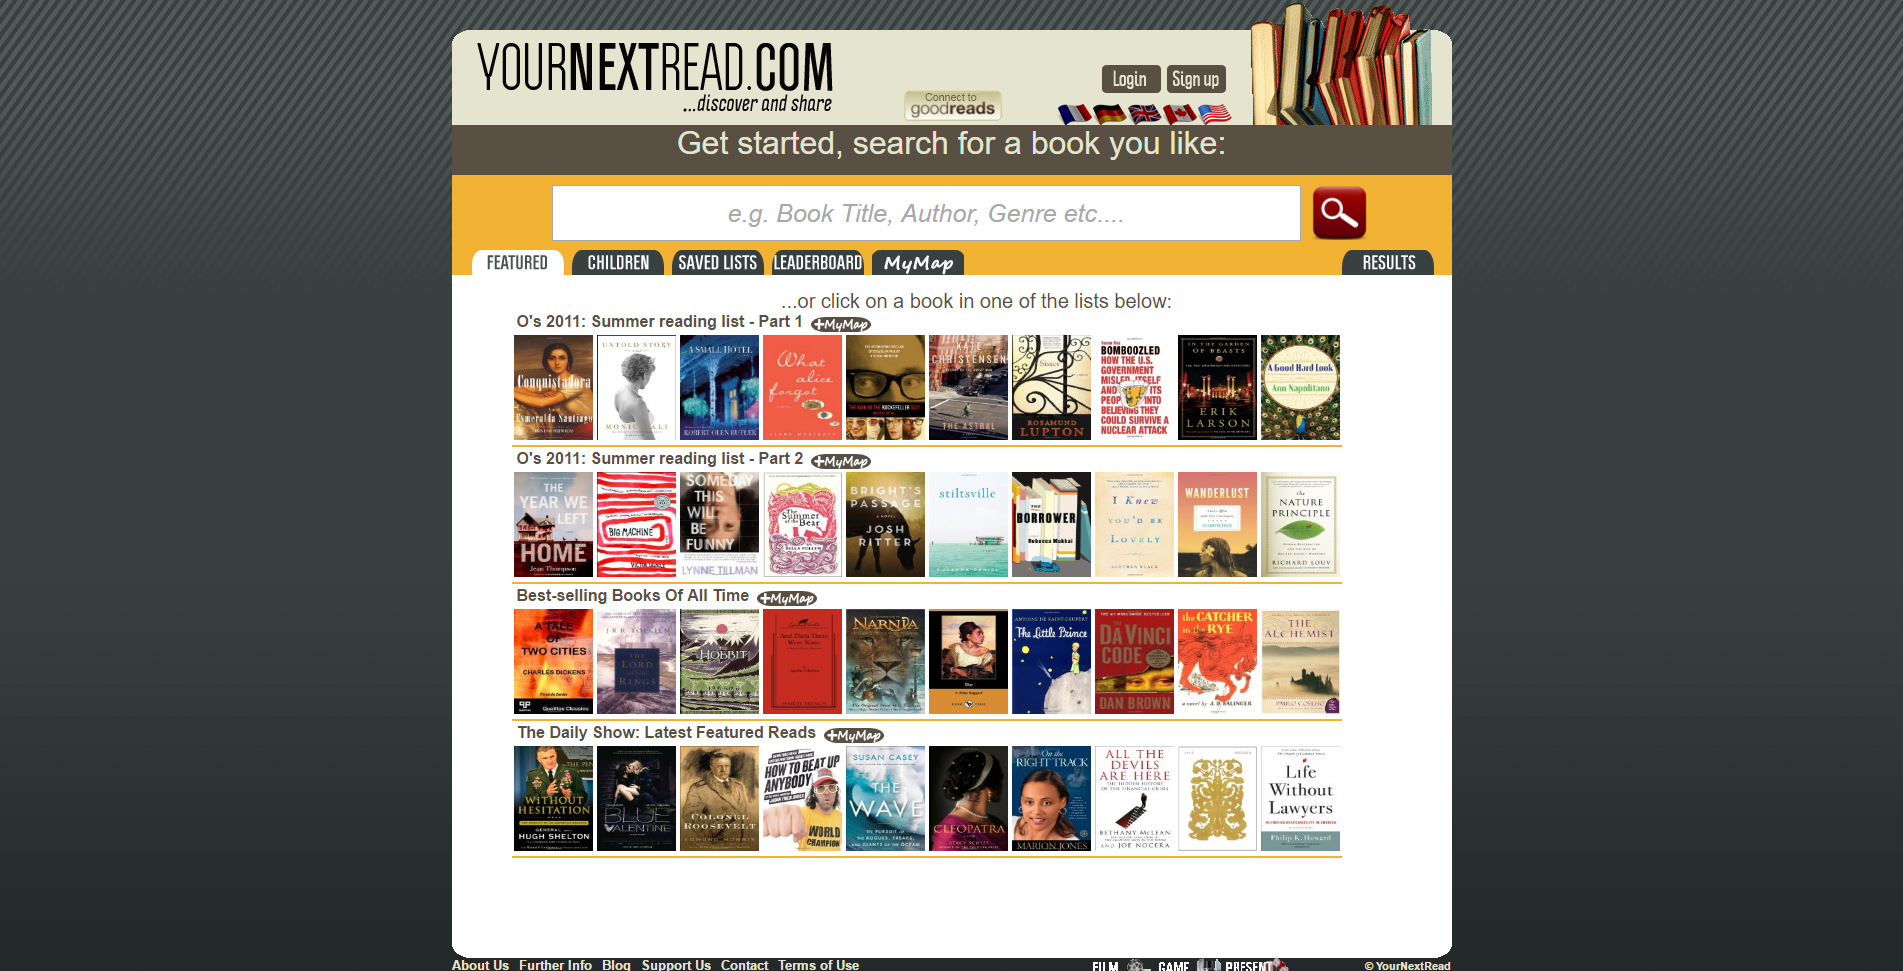 28 Websites to Help You Find Your Next Great Read - This is